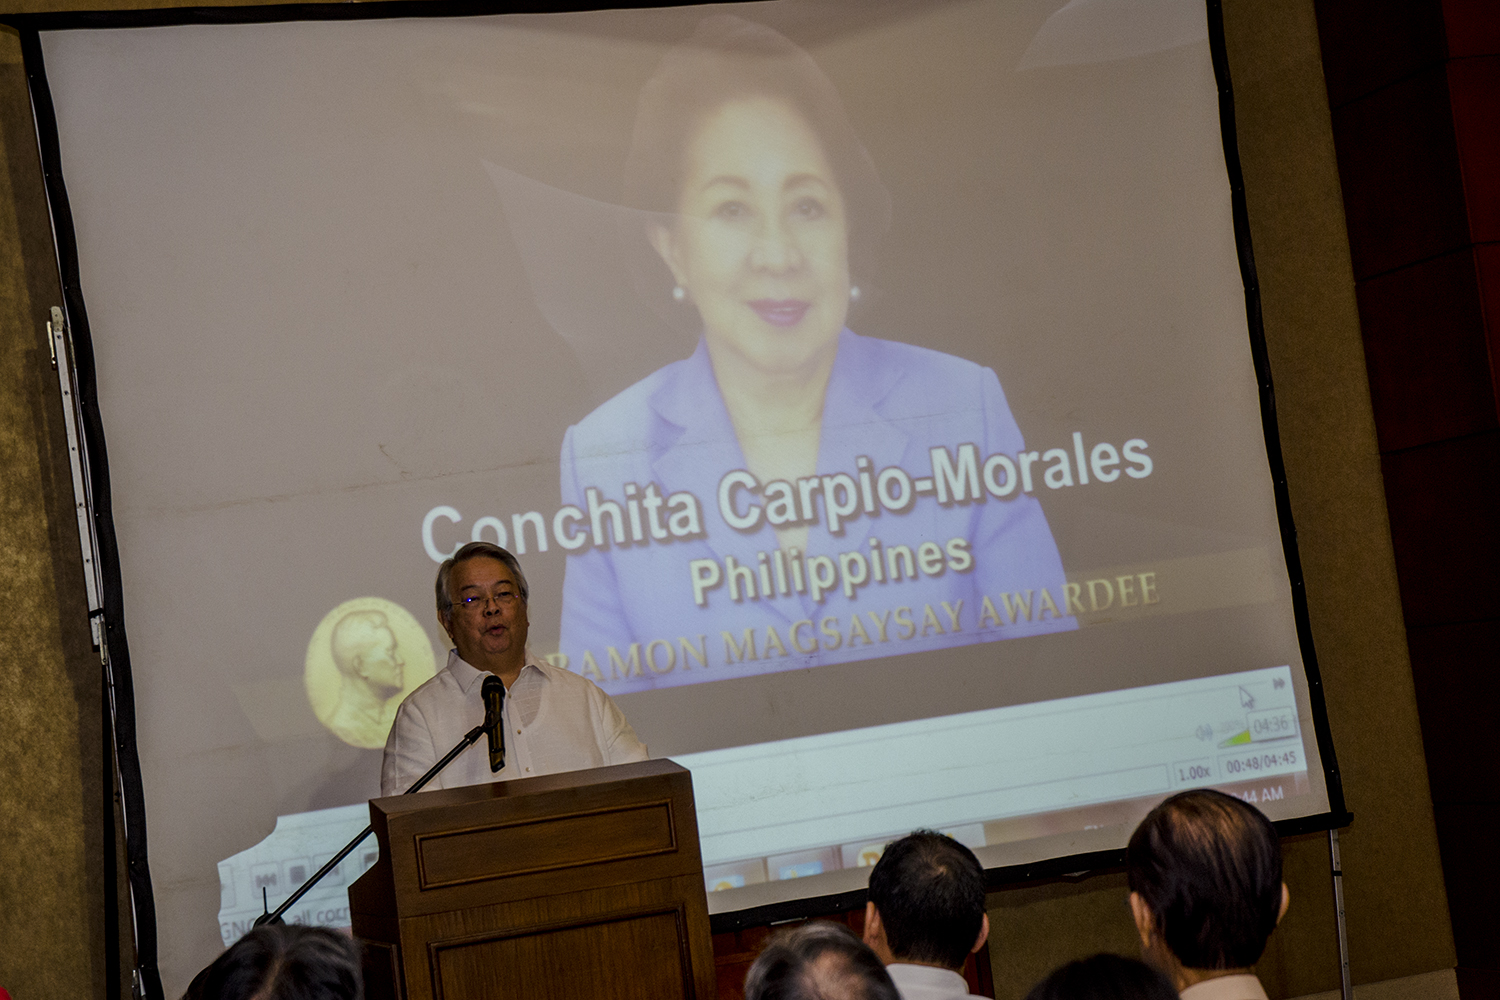 'HEROES OF ASIA.' Ombudsman Conchit Carpio Morales is one of 6 winners of the 2016 Ramon Magsaysay Awards. Photo by Rob Reyes/Rappler